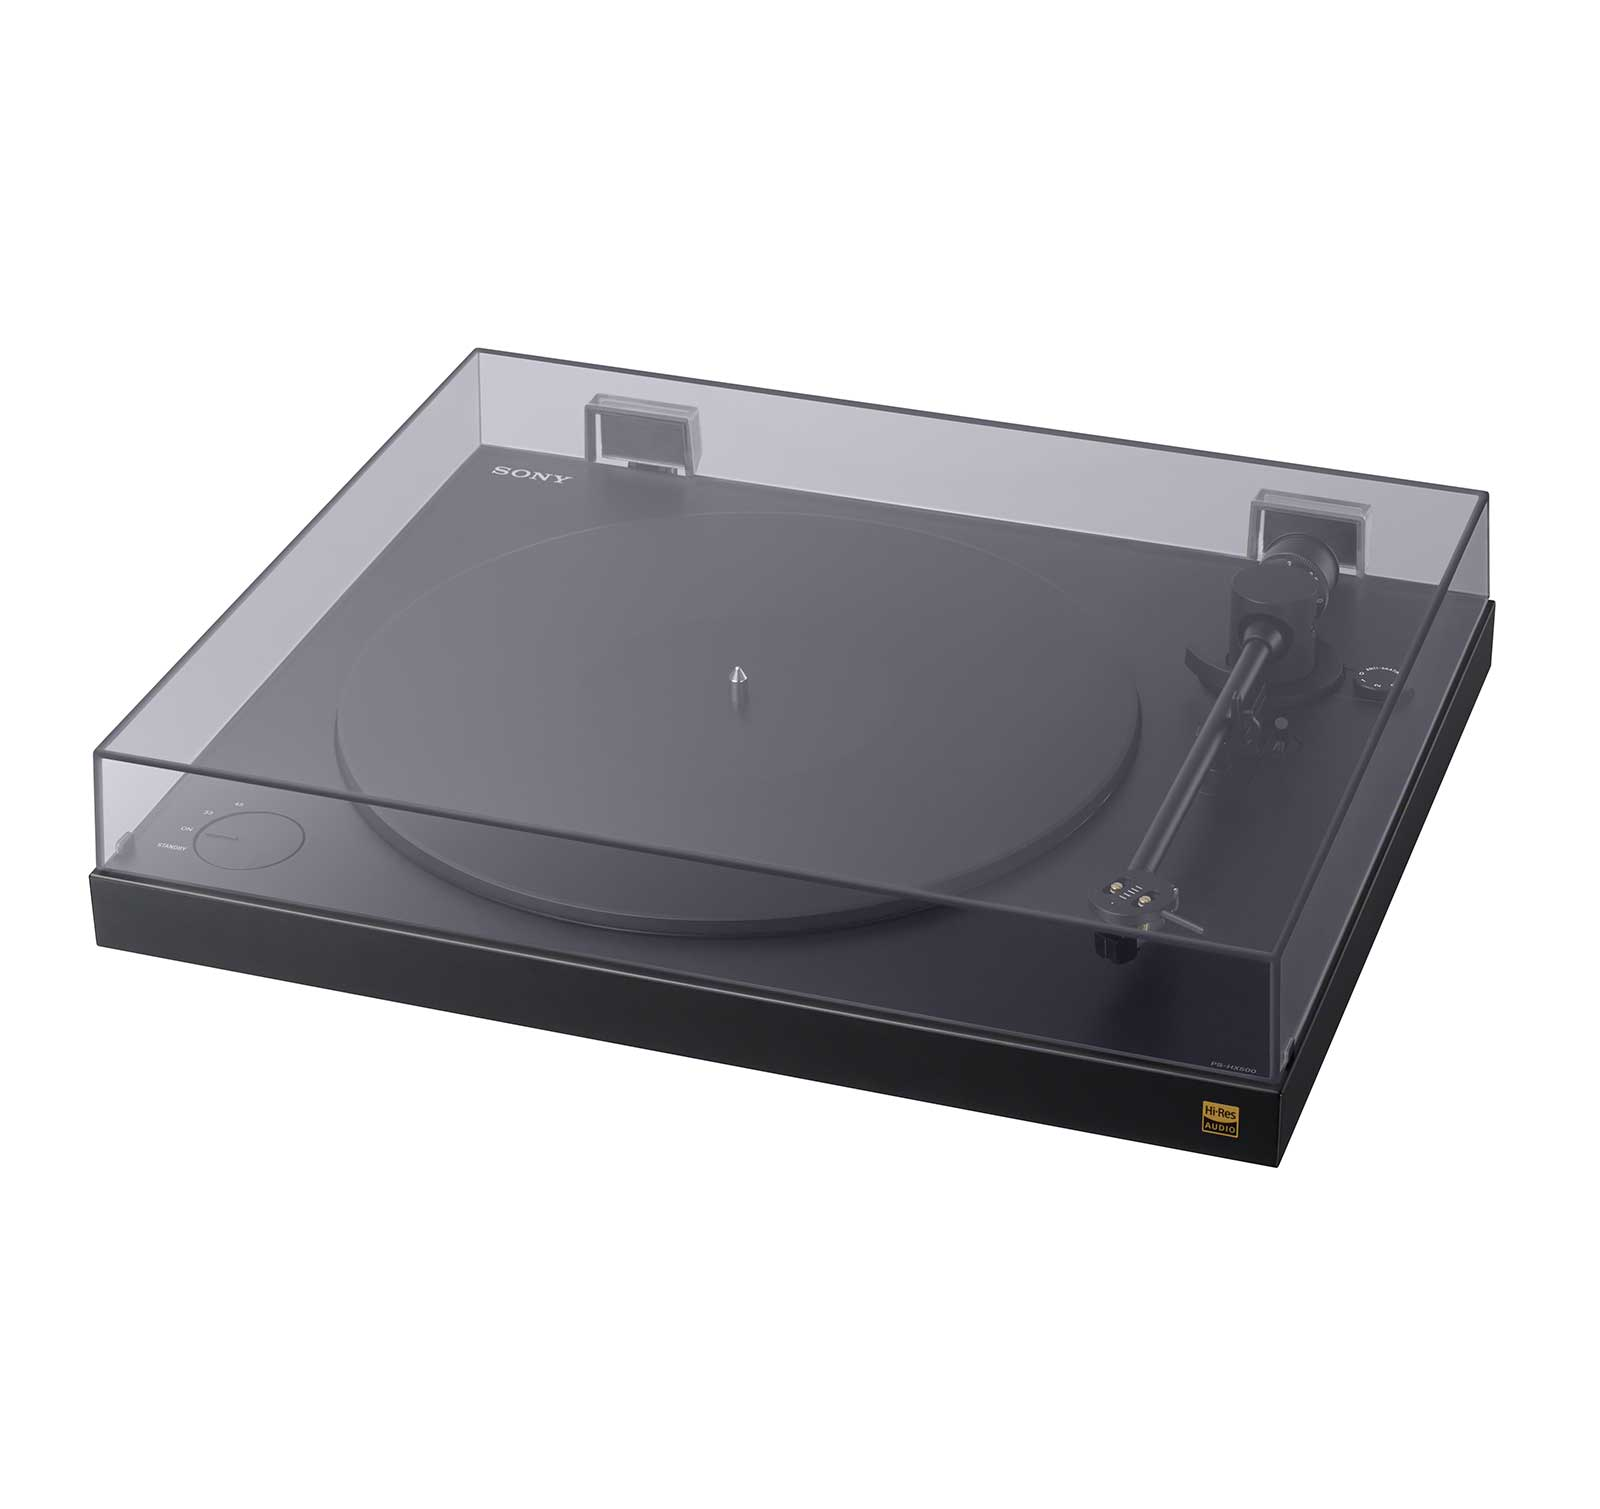 Sony PSHX500 Turntable with USB Output by Sony